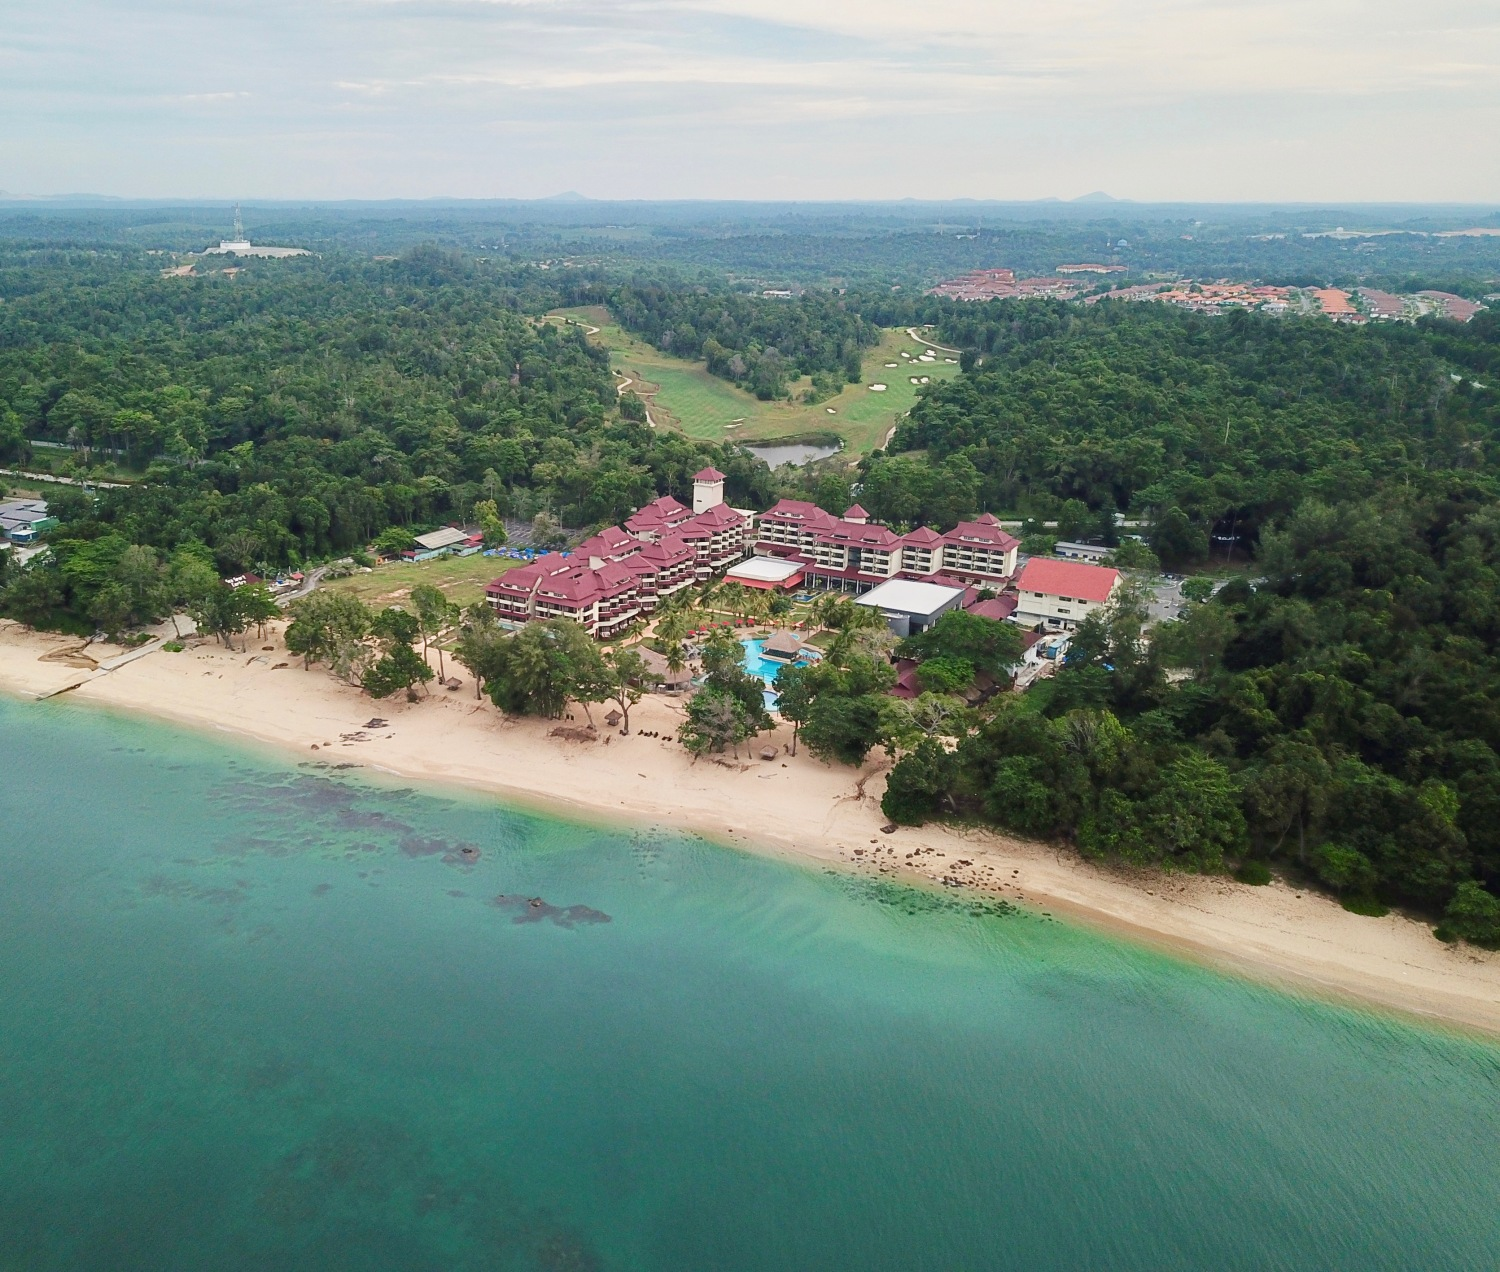 Desaru S Sand And Sandals Gets Us 15m Makeover Hotel And